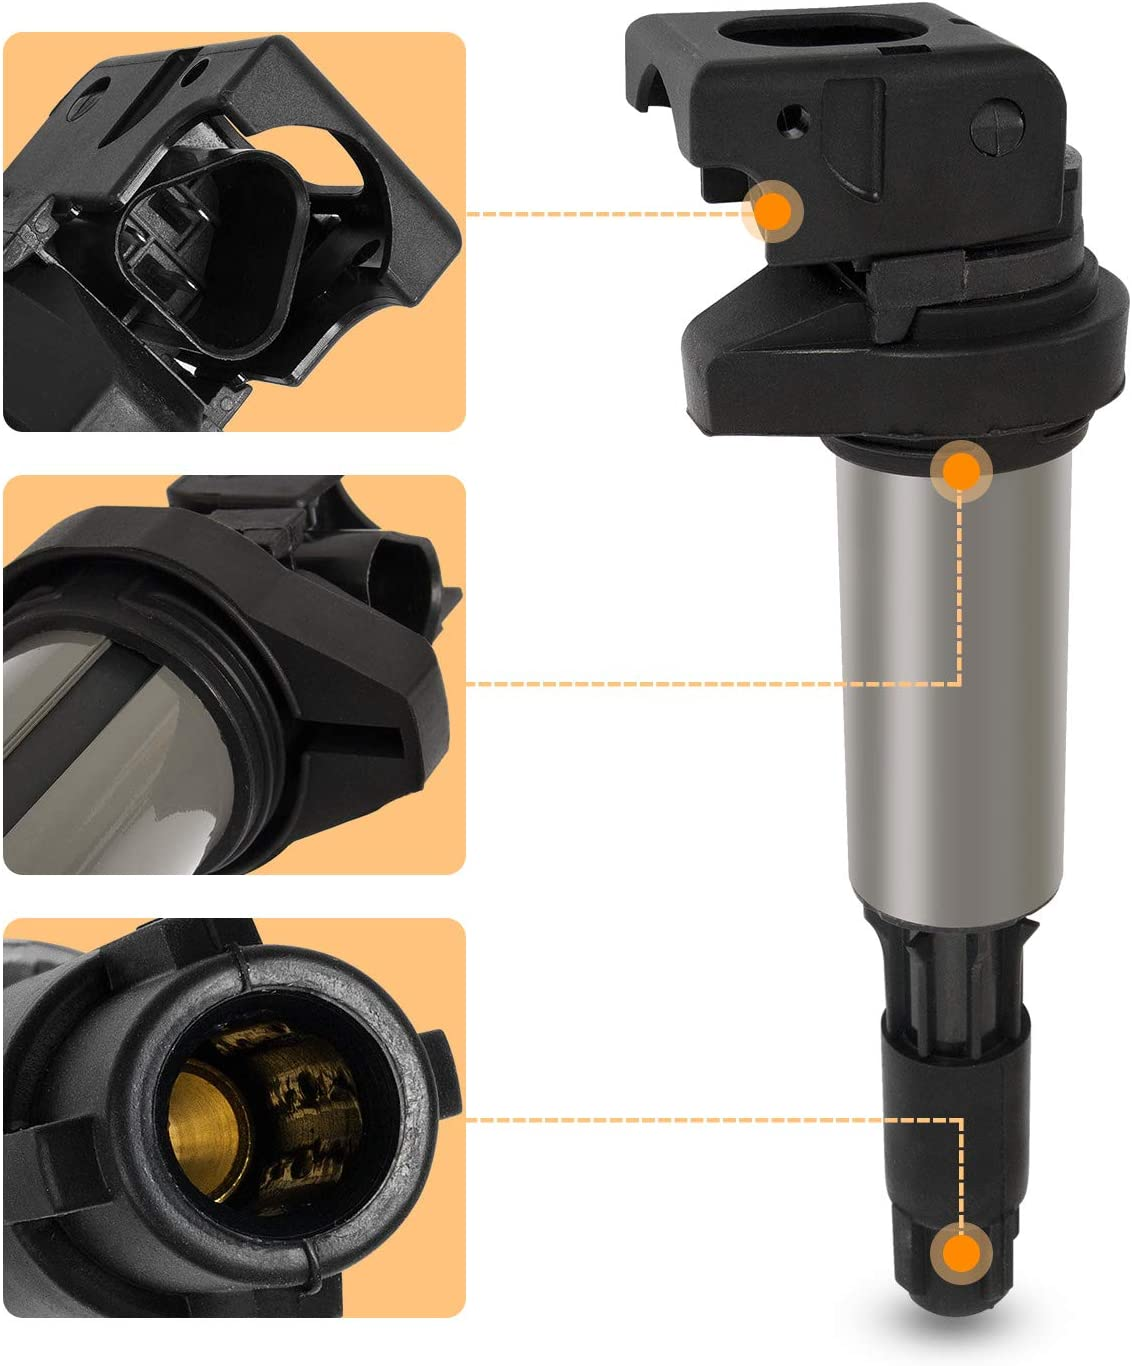 Compatible With BMW 330i 330xi 525i 530i 545i 550i 645ci 650i 745i 745li 750i 750li 760i 760li M3 X3 Z4 Ignition Coil Pack of 6 Replaces 12131712219 12137594938 5C1401